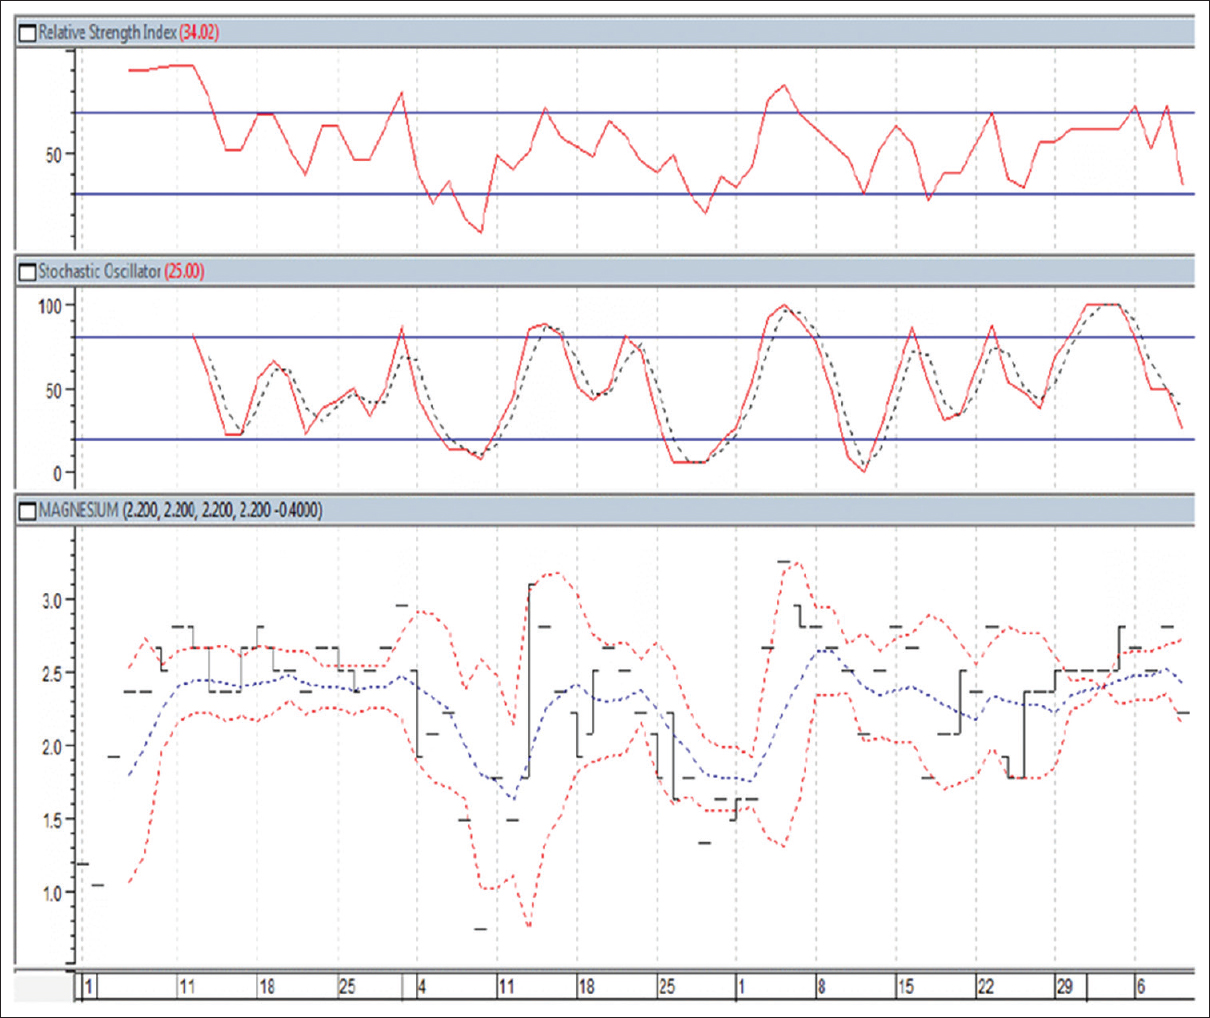 Figure 13: Serum magnesium level data displayed in financial analysis fashion. Each epoch is 2 weeks long. Note the good overall trending properties of the data and ease of interpretation provided by the stochastic oscillator, price envelope, and relative strength index indicators